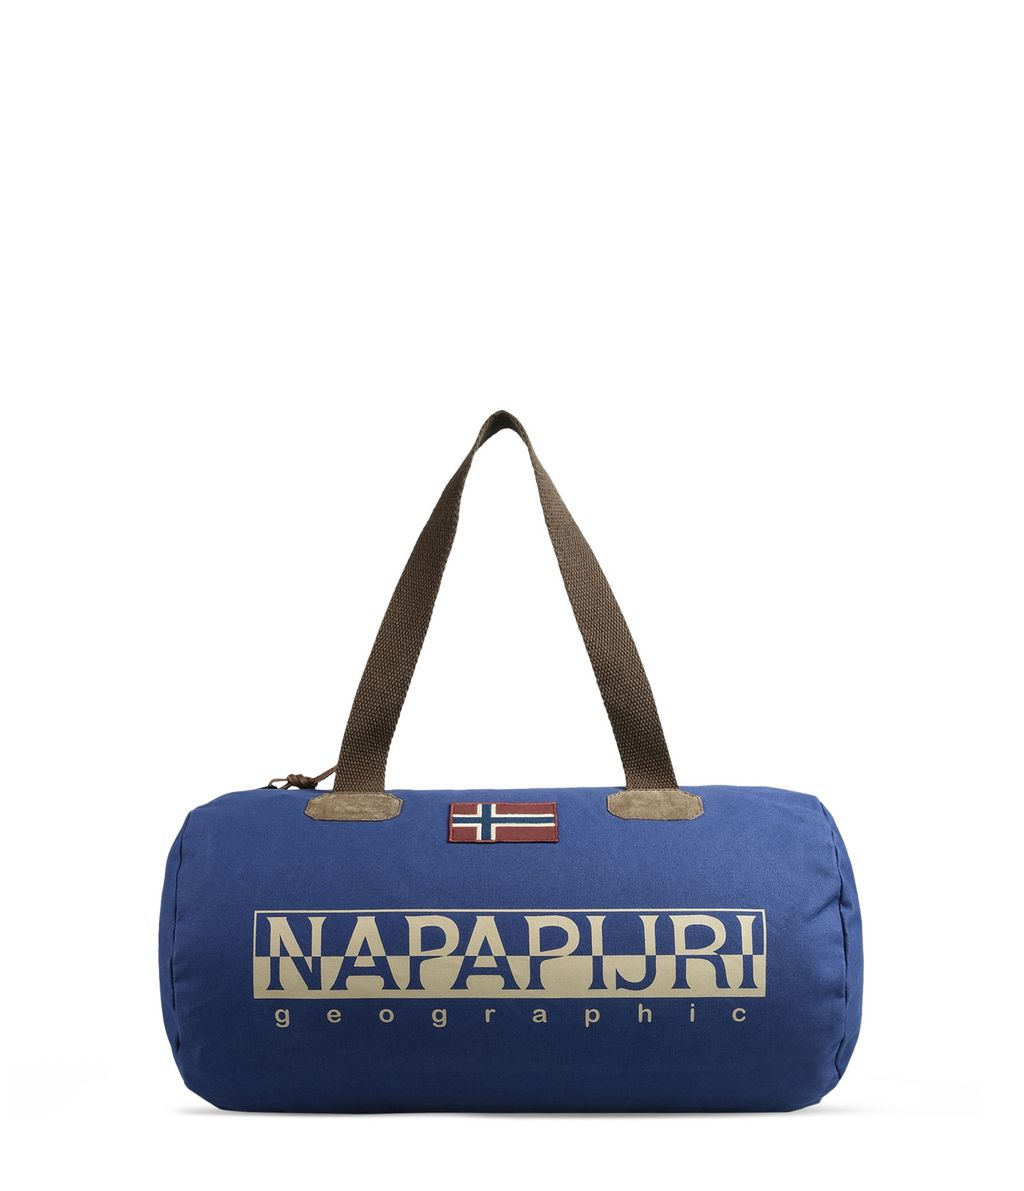 NAPAPIJRI BERING SMALL  TRAVEL BAG,BLUE